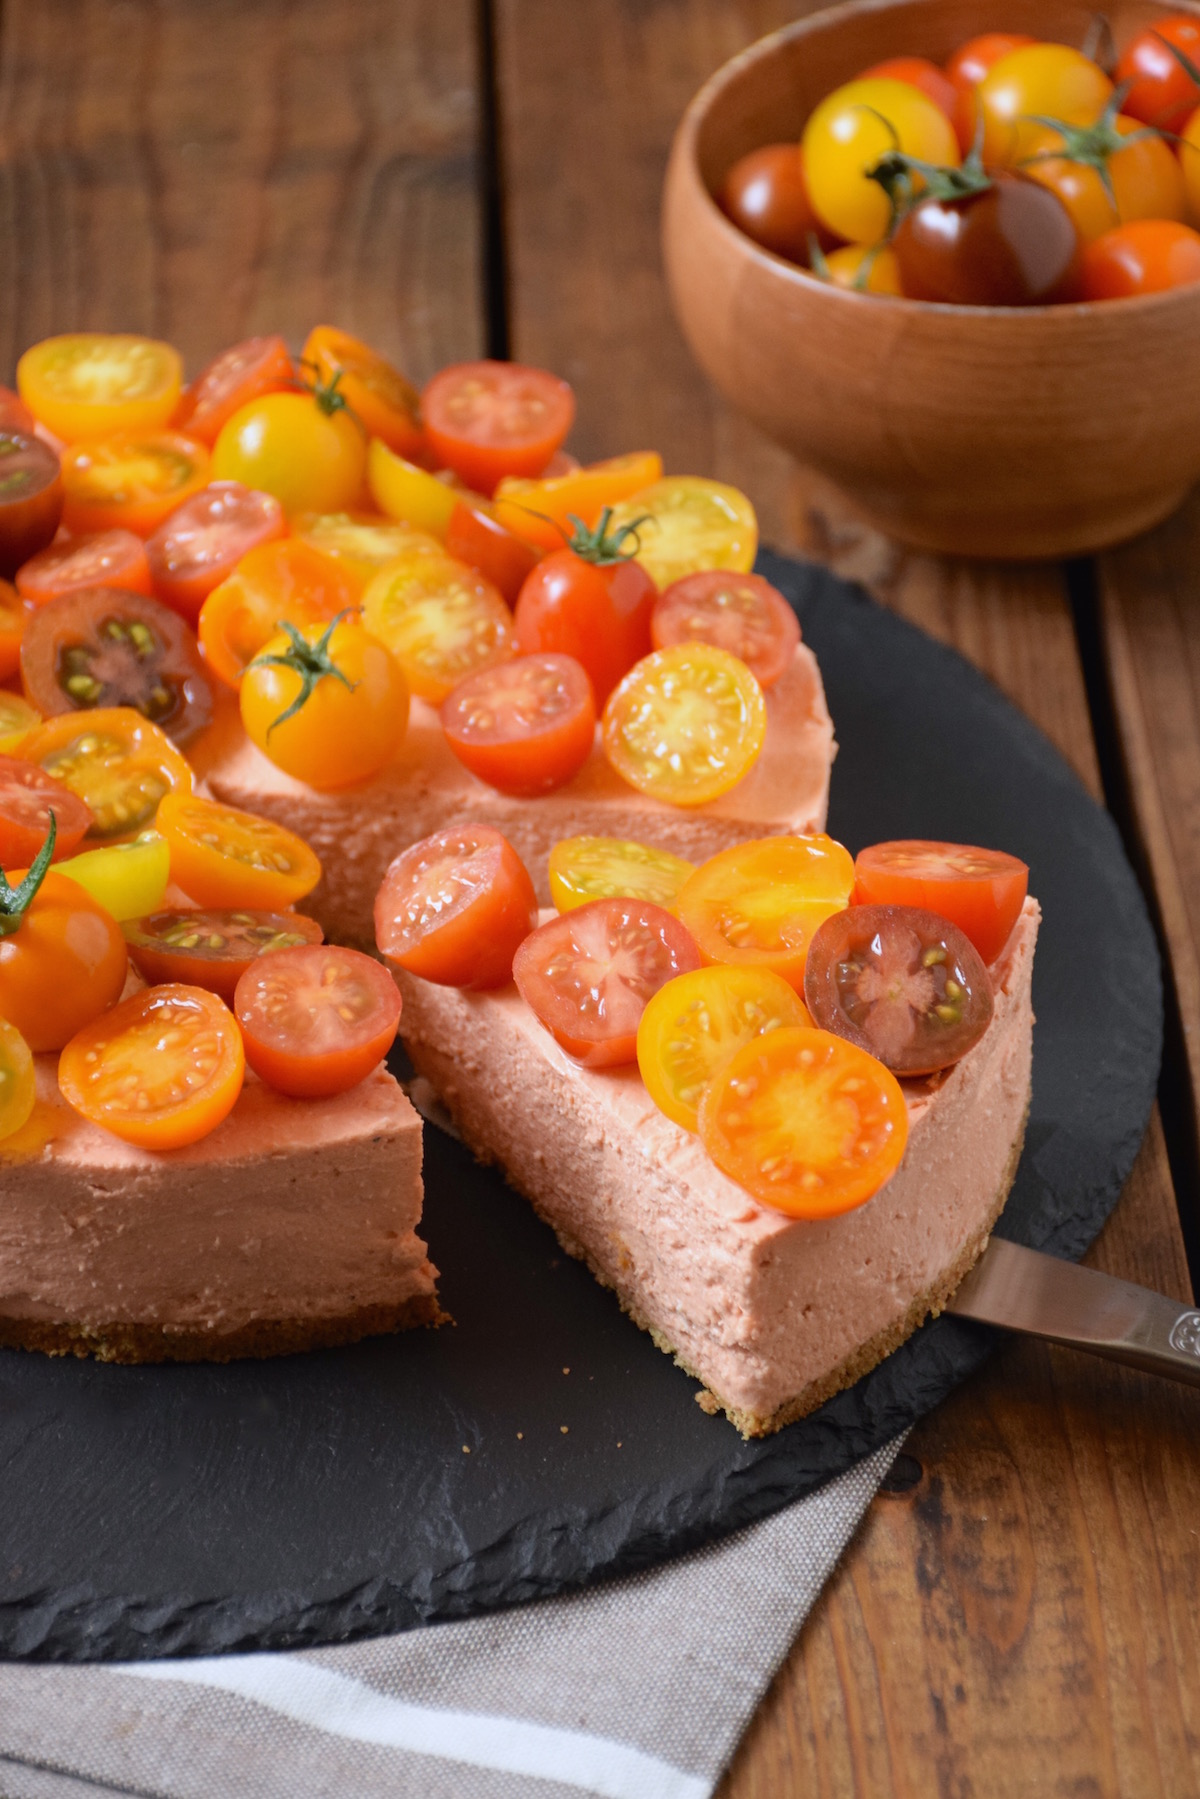 Savoury cheesecake with cherry tomatoes